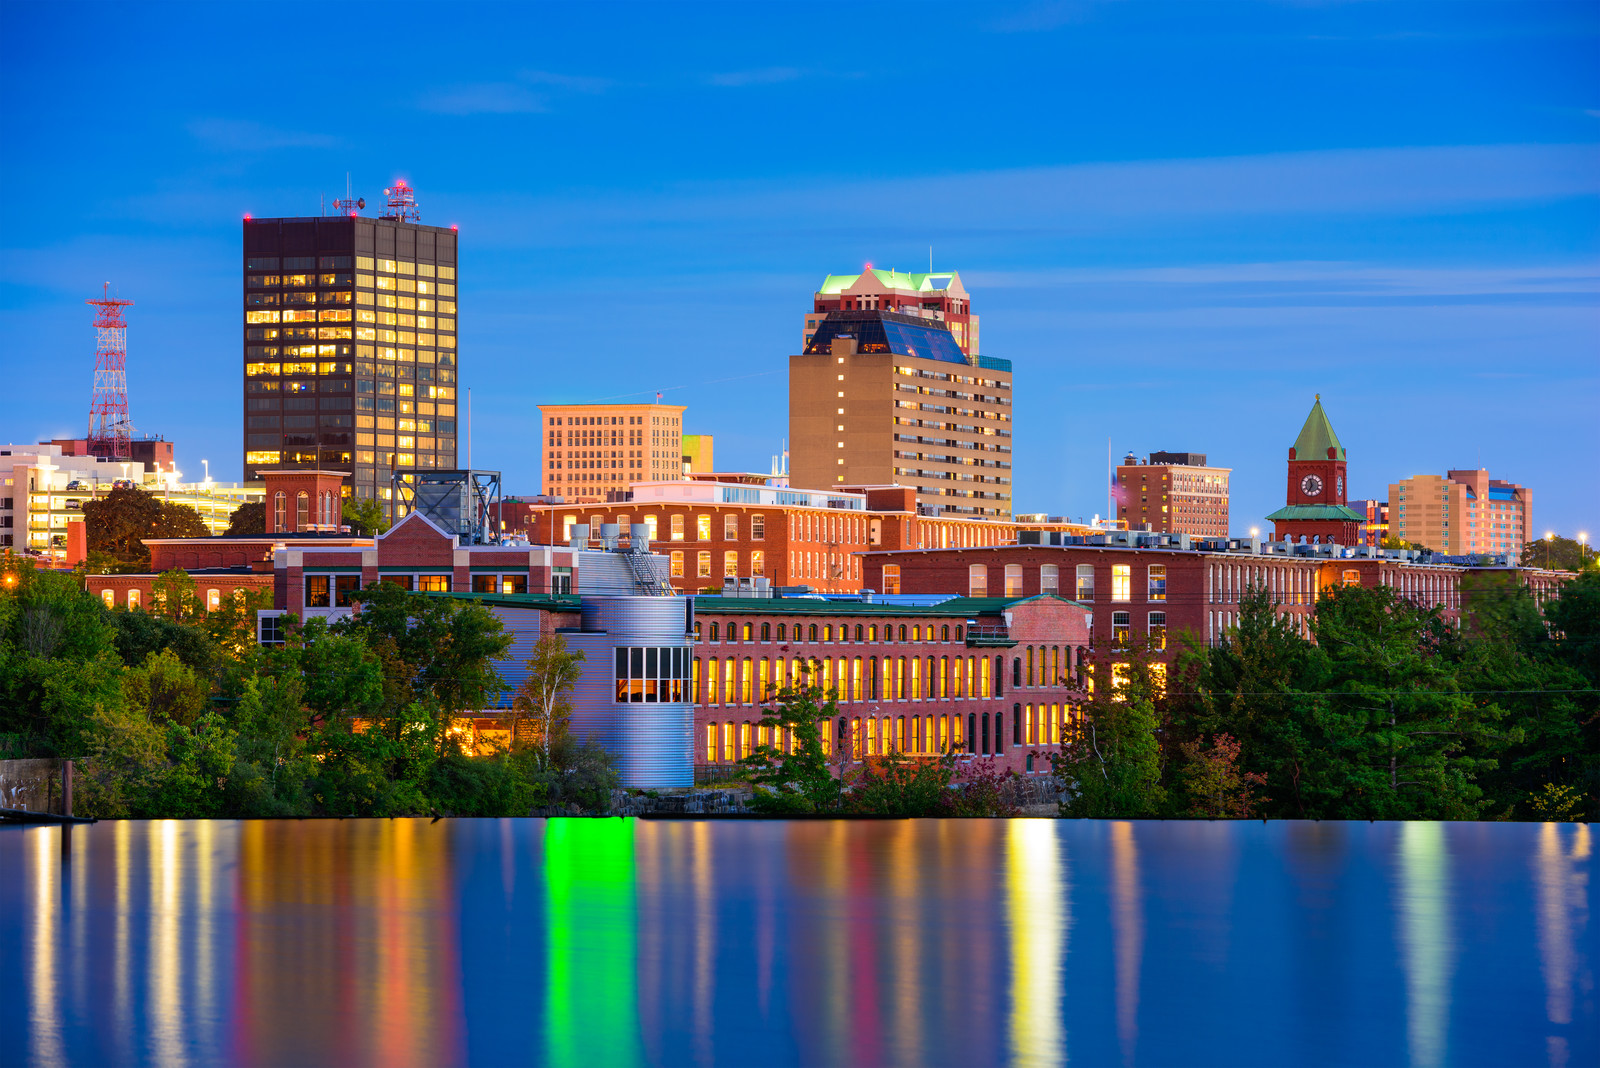 Manchester, New Hampshire Skyline on the Merrimack River in the evening with the lights reflecting off the still water